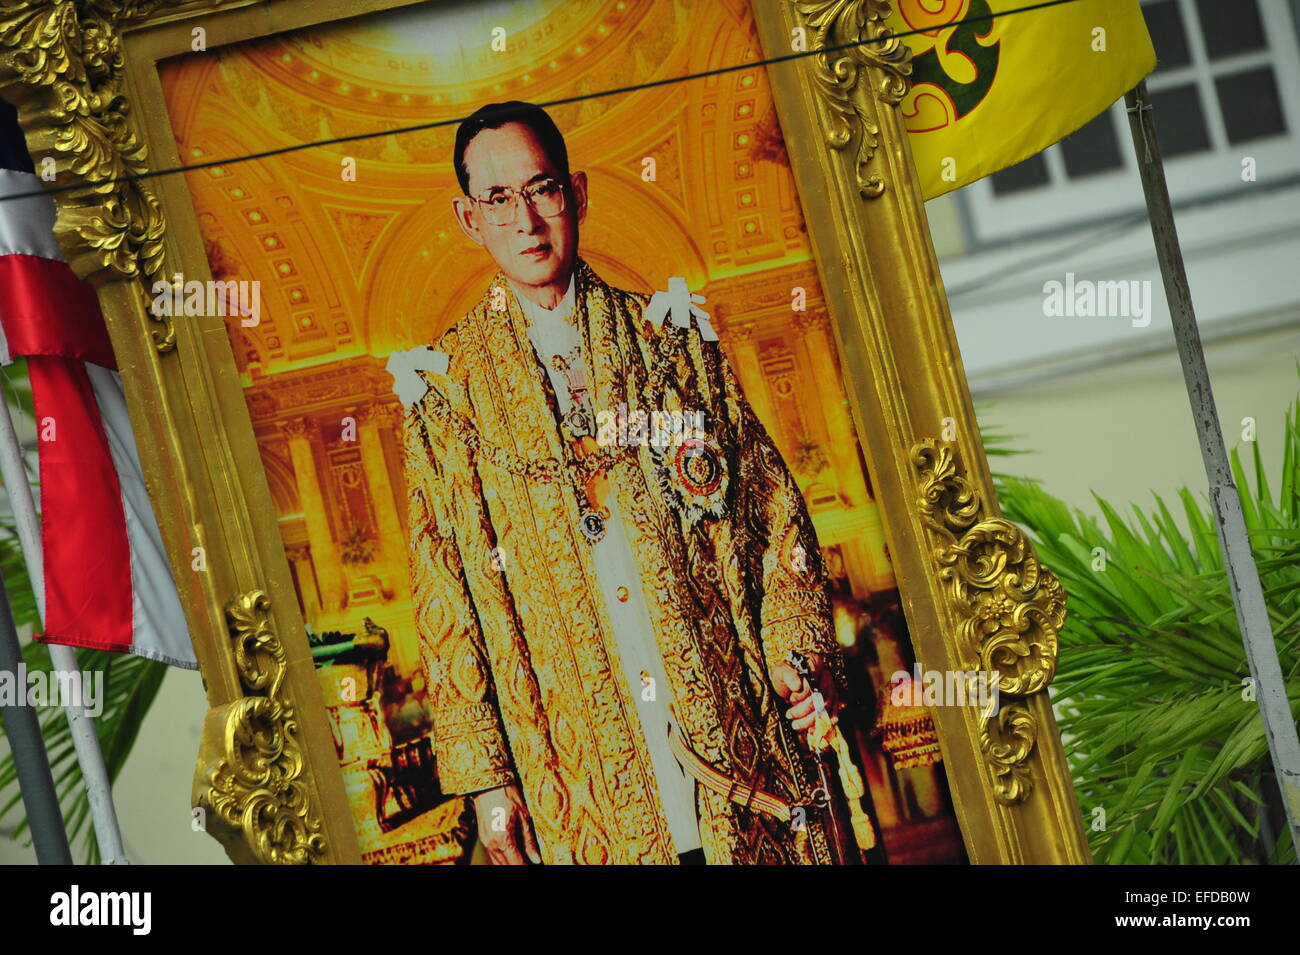 King of Thailand, Bangkok, Thailand. Editorial use only. - Stock Image